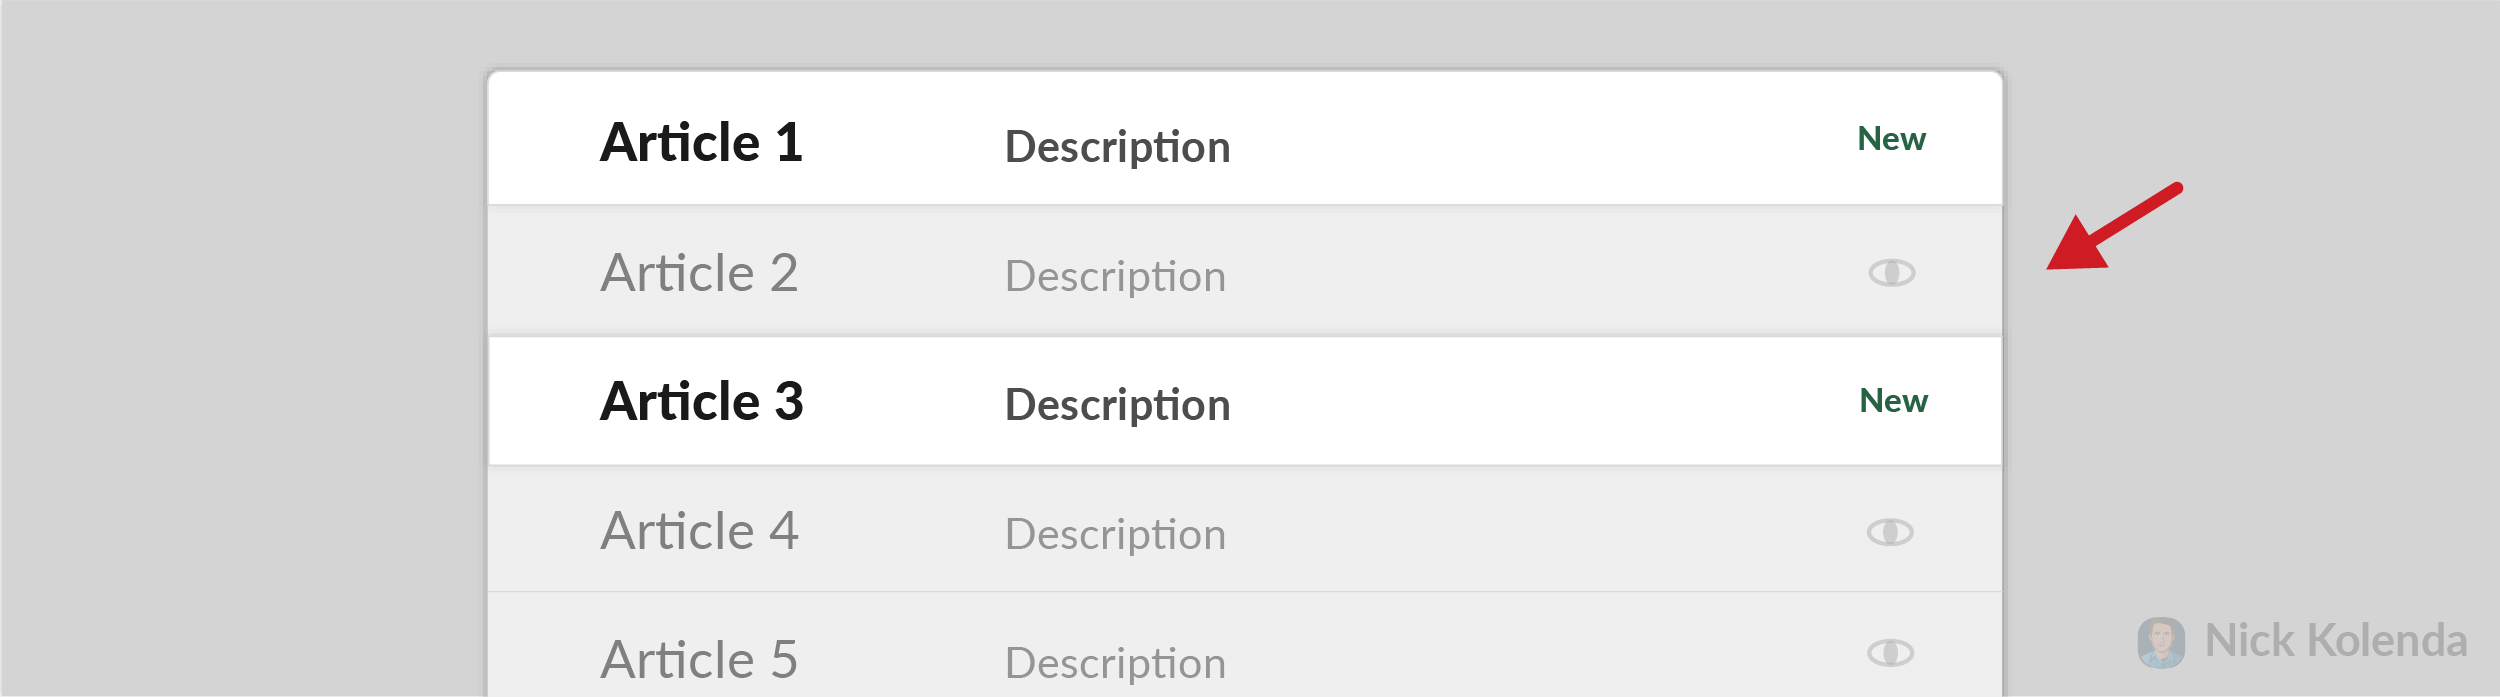 List of options with some options greyed out